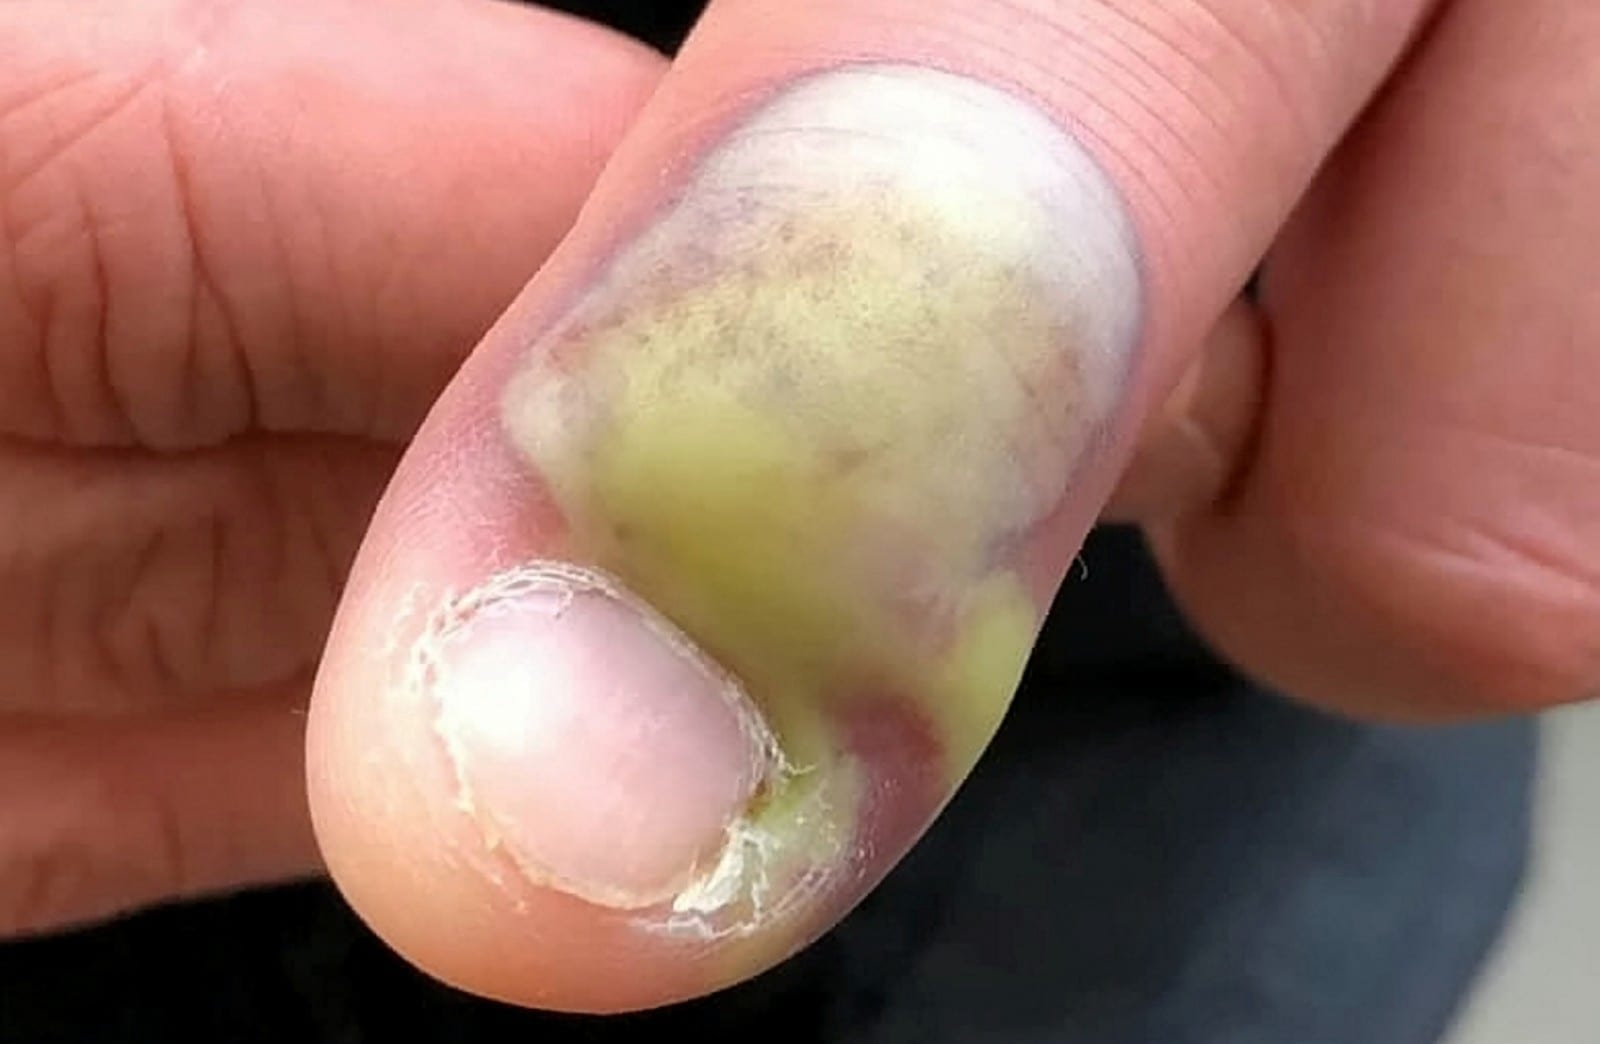 Man Is Speaking Out To Warn Others After His 'Harmless' Nail Biting Habit Left Him Fighting For His Life